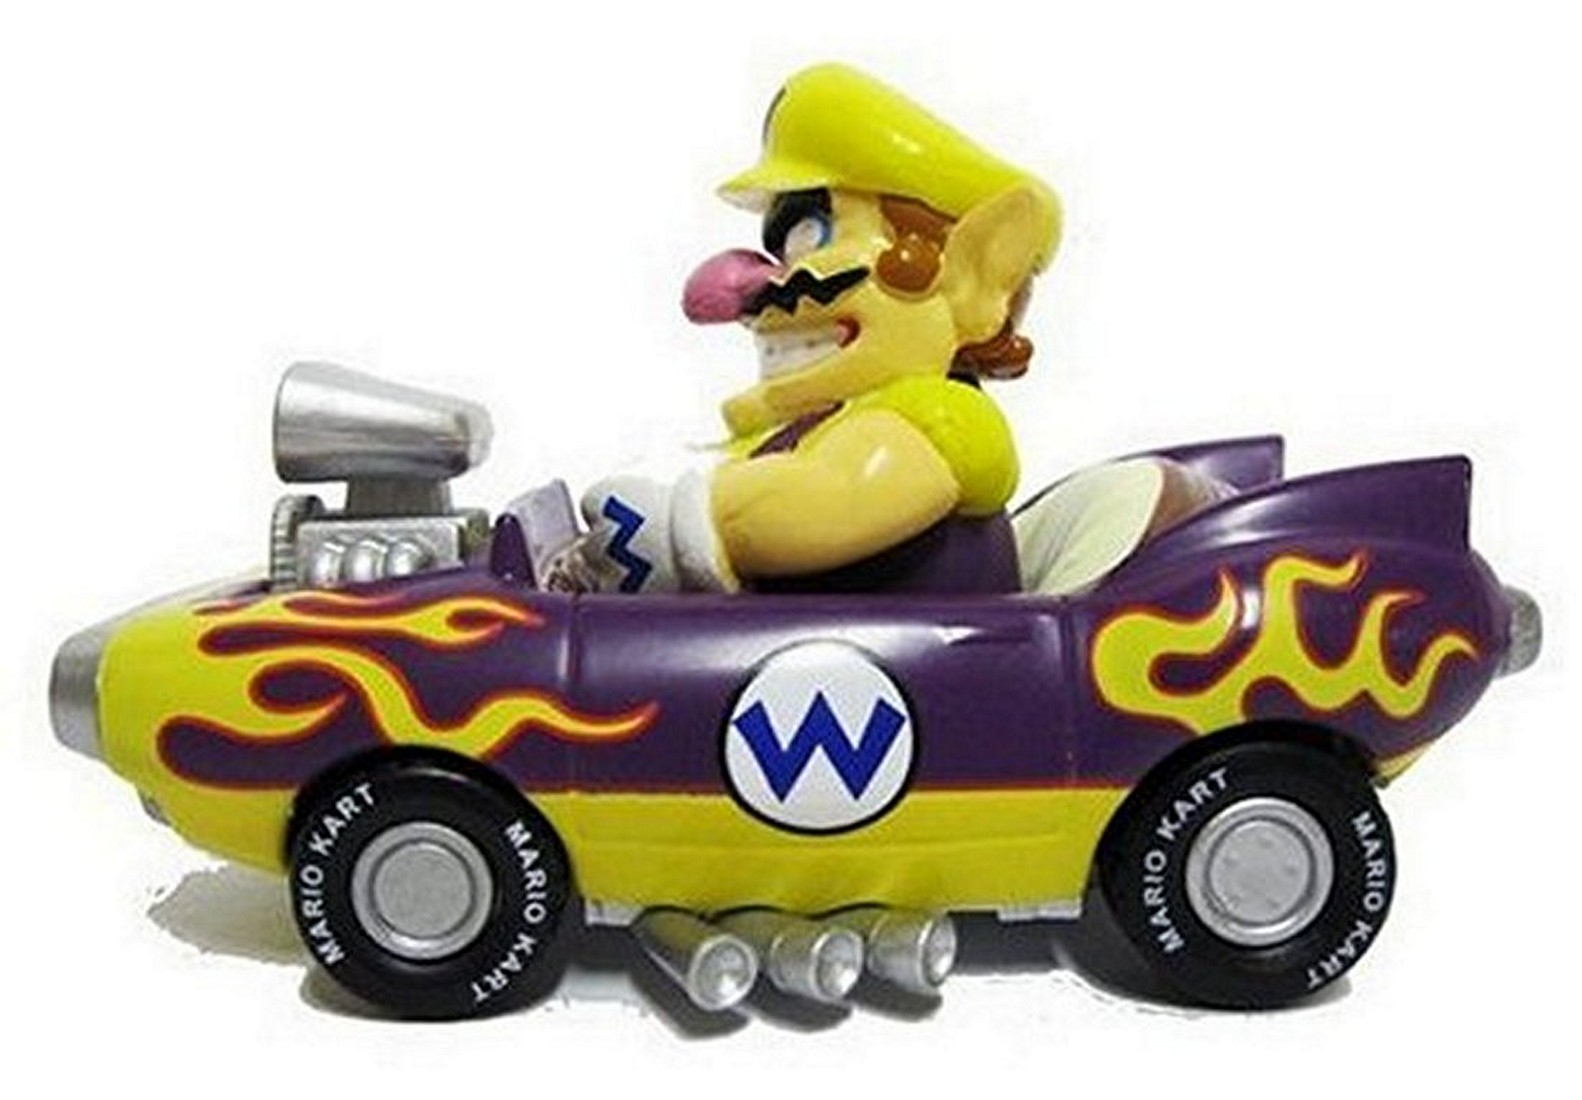 nintendo mario kart 2010 wii pull back car mini figure 3. Black Bedroom Furniture Sets. Home Design Ideas